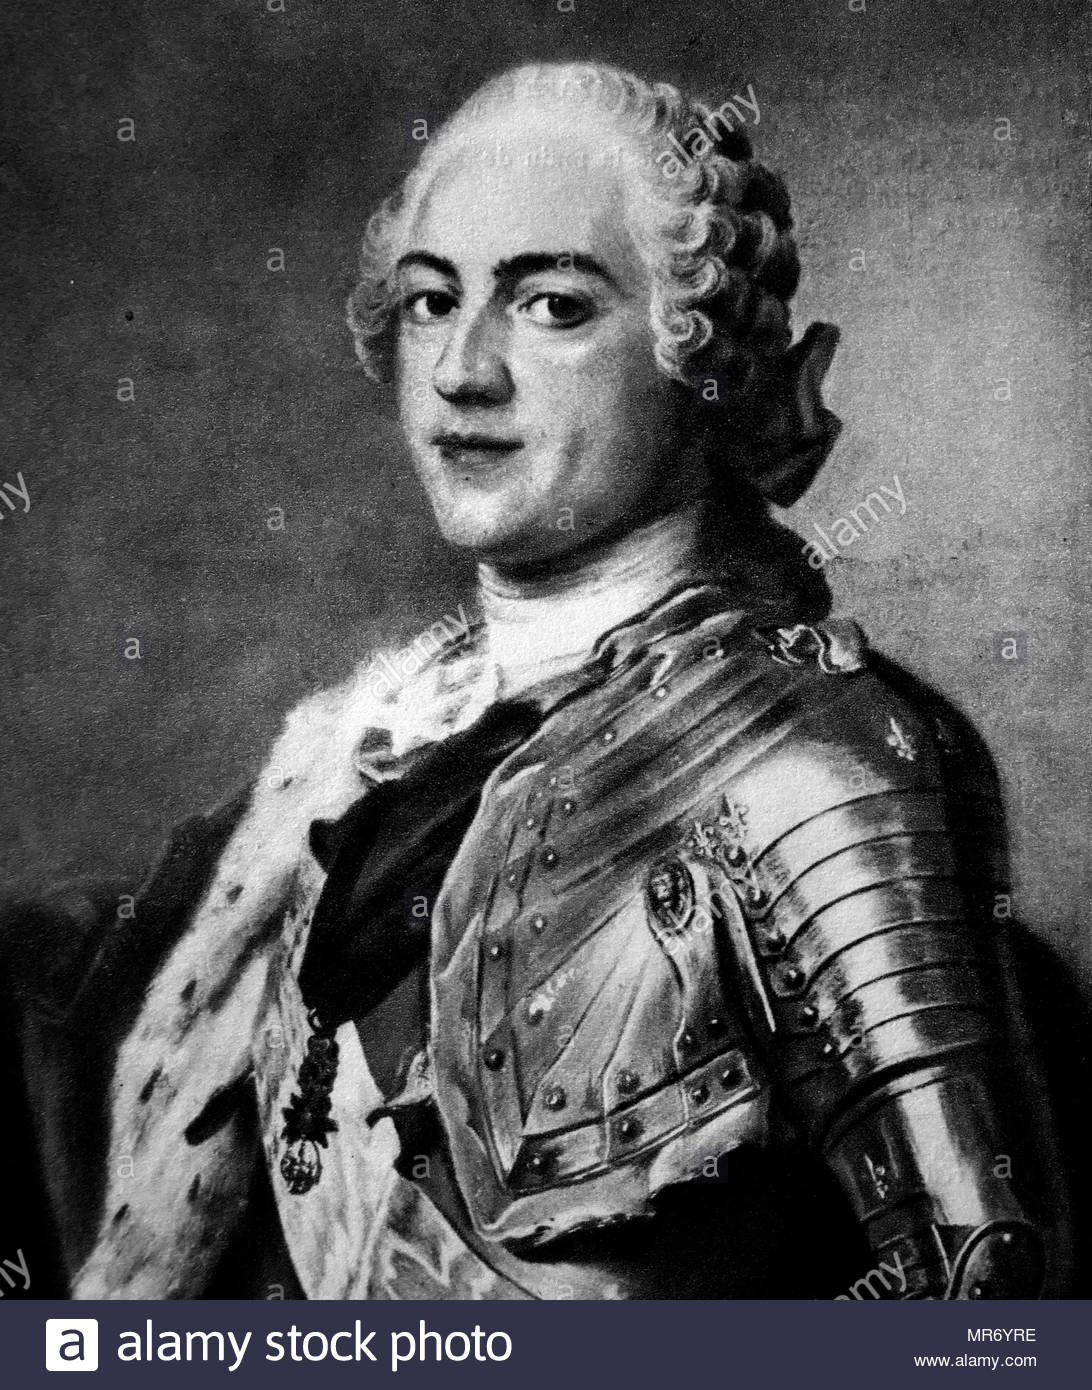 Louis XV (1710 – 1774), known as Louis the Beloved, (Louis le bien Aimé), was a monarch of the House of Bourbon who ruled as King of France from 1715 until his death in 1774. Portrait by Maurice-Quentin de La Tour, 1748 - Stock Image